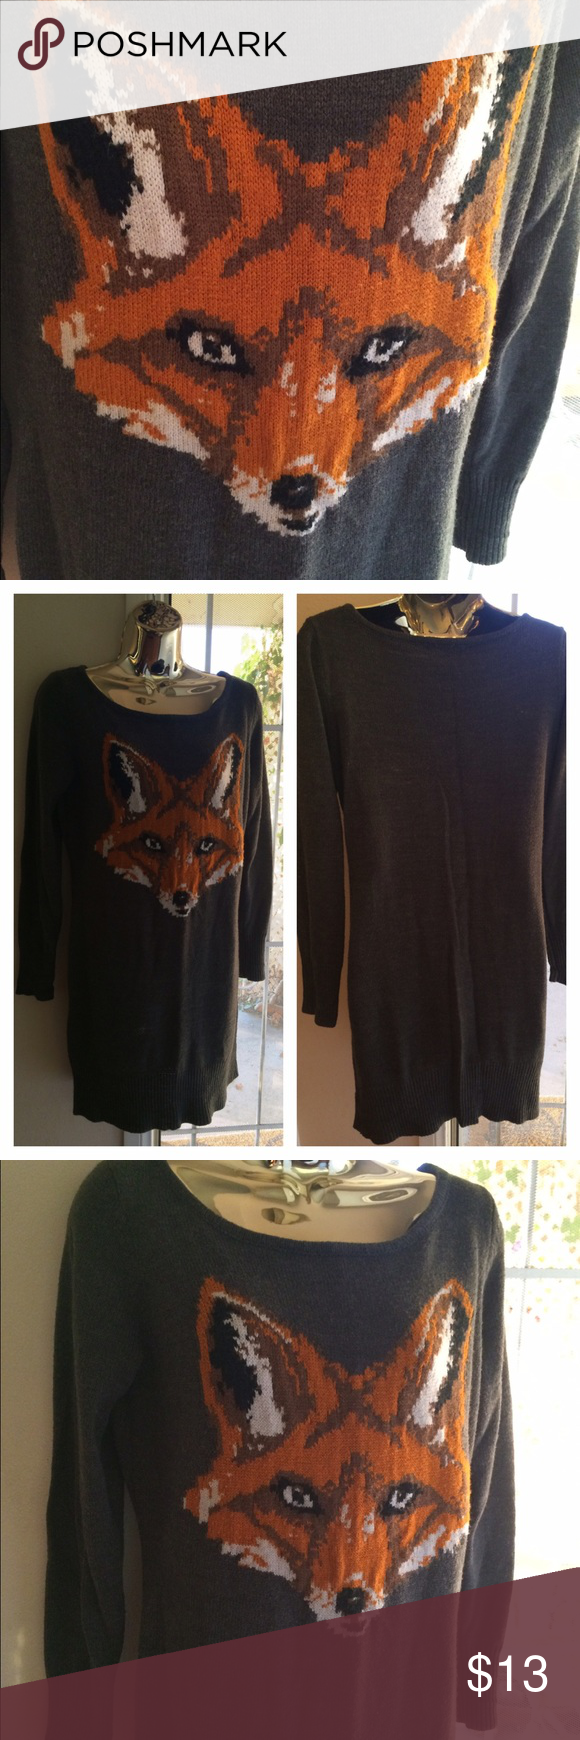 """Foxy Gray Sweater Dress Long gray Fox sweater dress by Xhilaration. Size:  M/M Approx. 34"""" long. Approx. 17"""" pit to pit. No rips, tears, or stains. Fox totem: """"The fox as a spirit guide offers good teachings about getting around obstacles instead of confronting them head to head."""" Thanks for looking! Xhilaration Dresses Midi"""